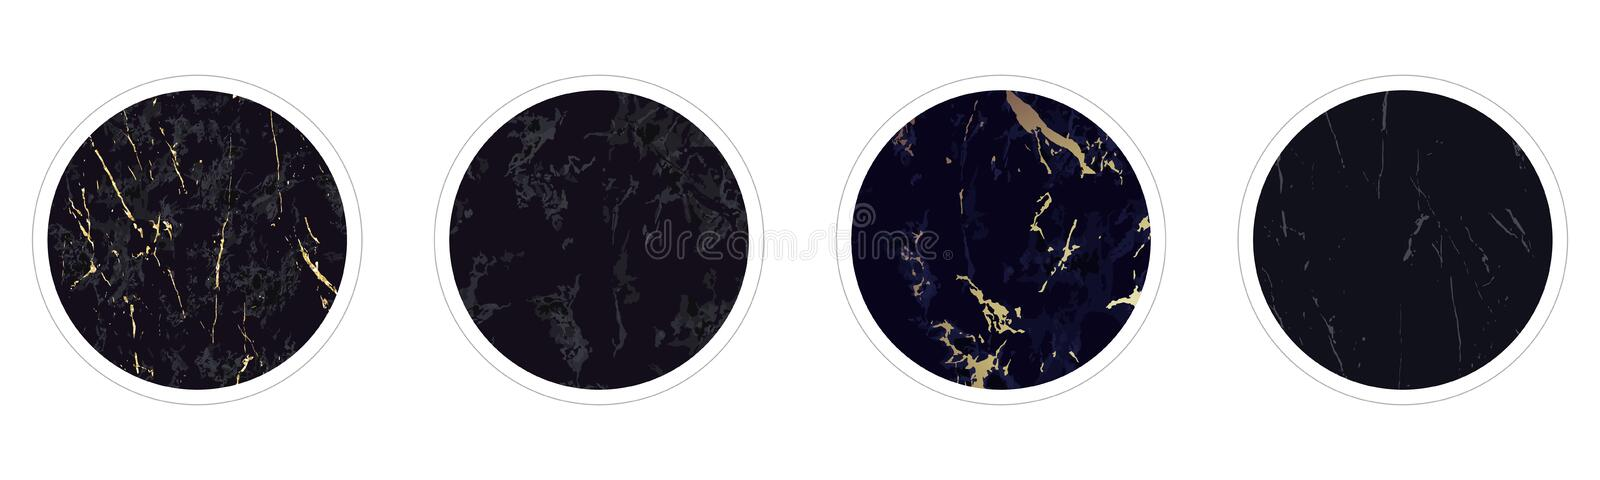 Highlight covers backgrounds. Set of marble design royalty free illustration